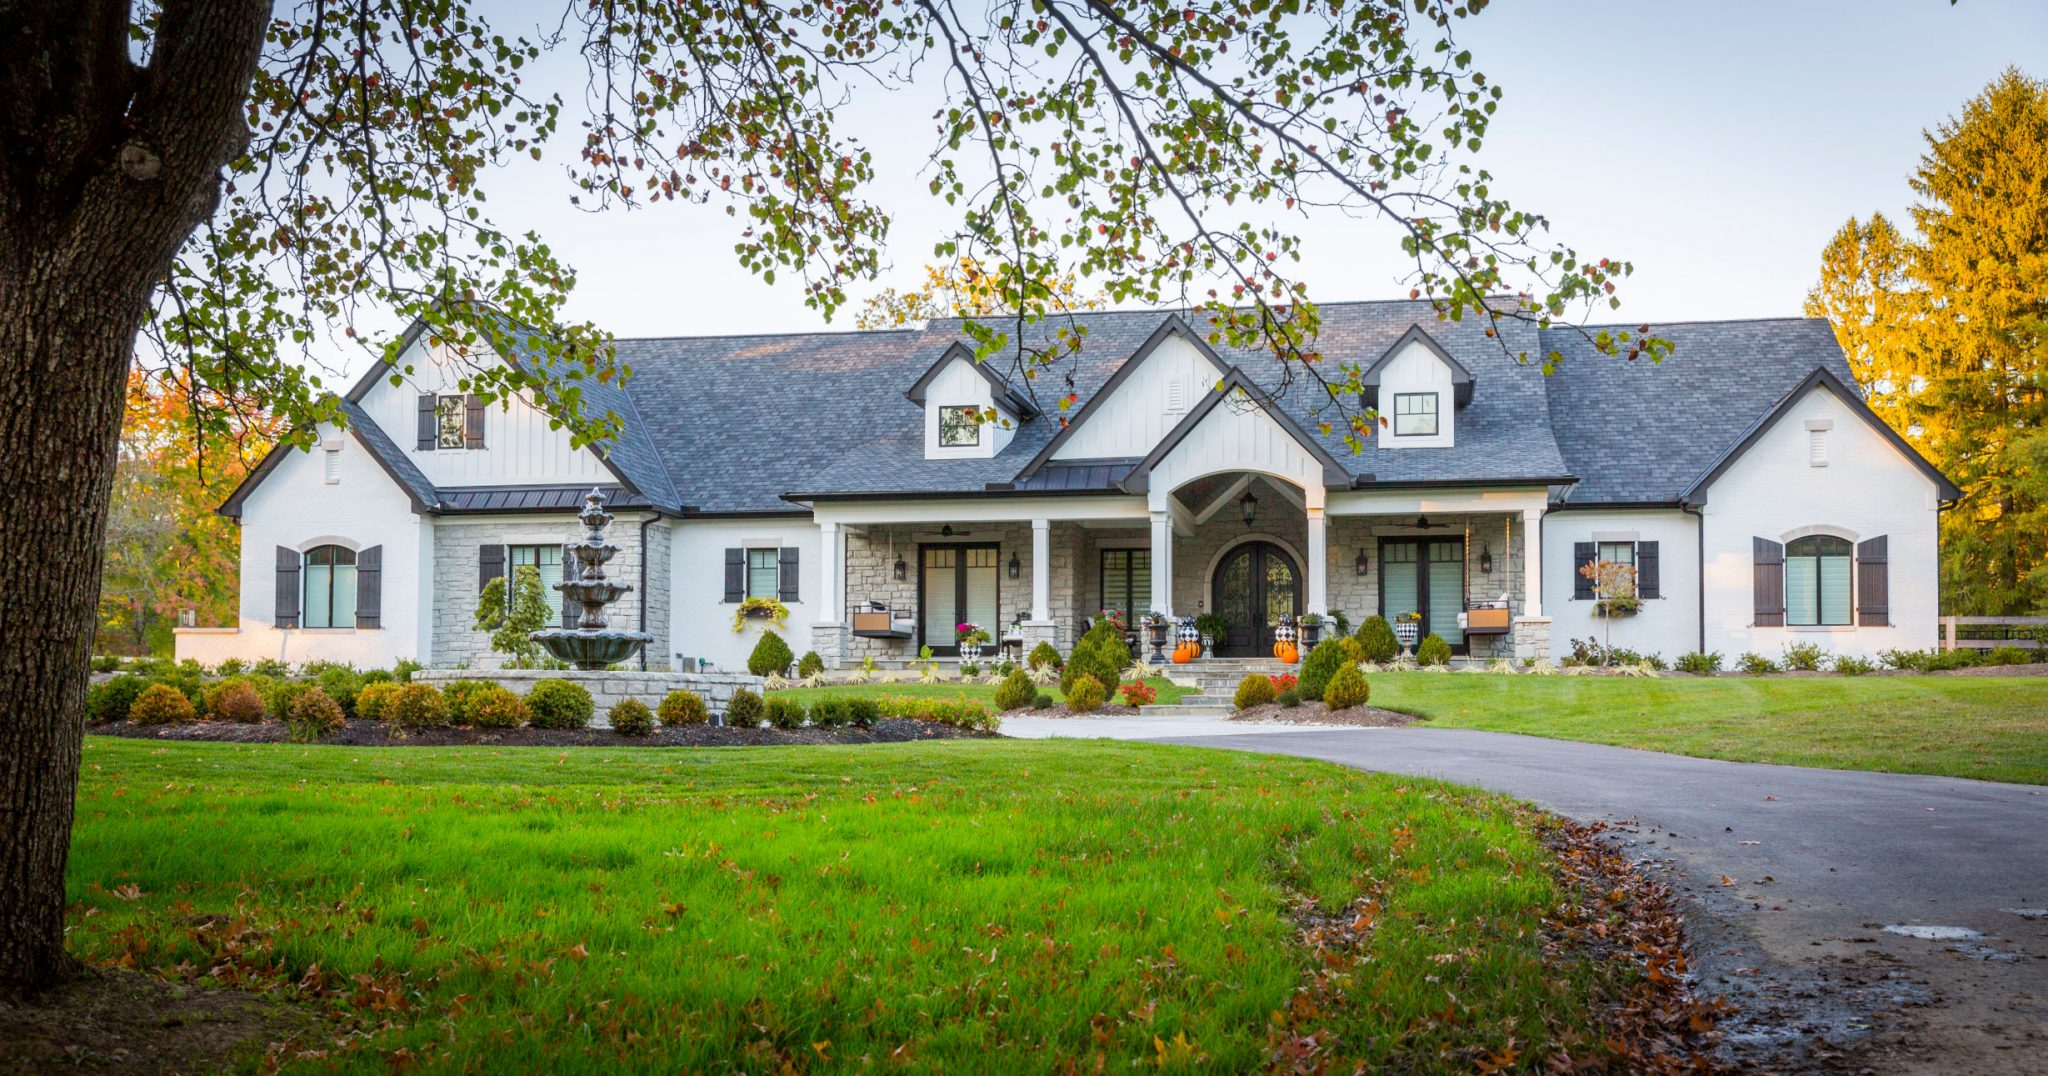 Indian Hill luxury custom home by Hensley Custom Building Group